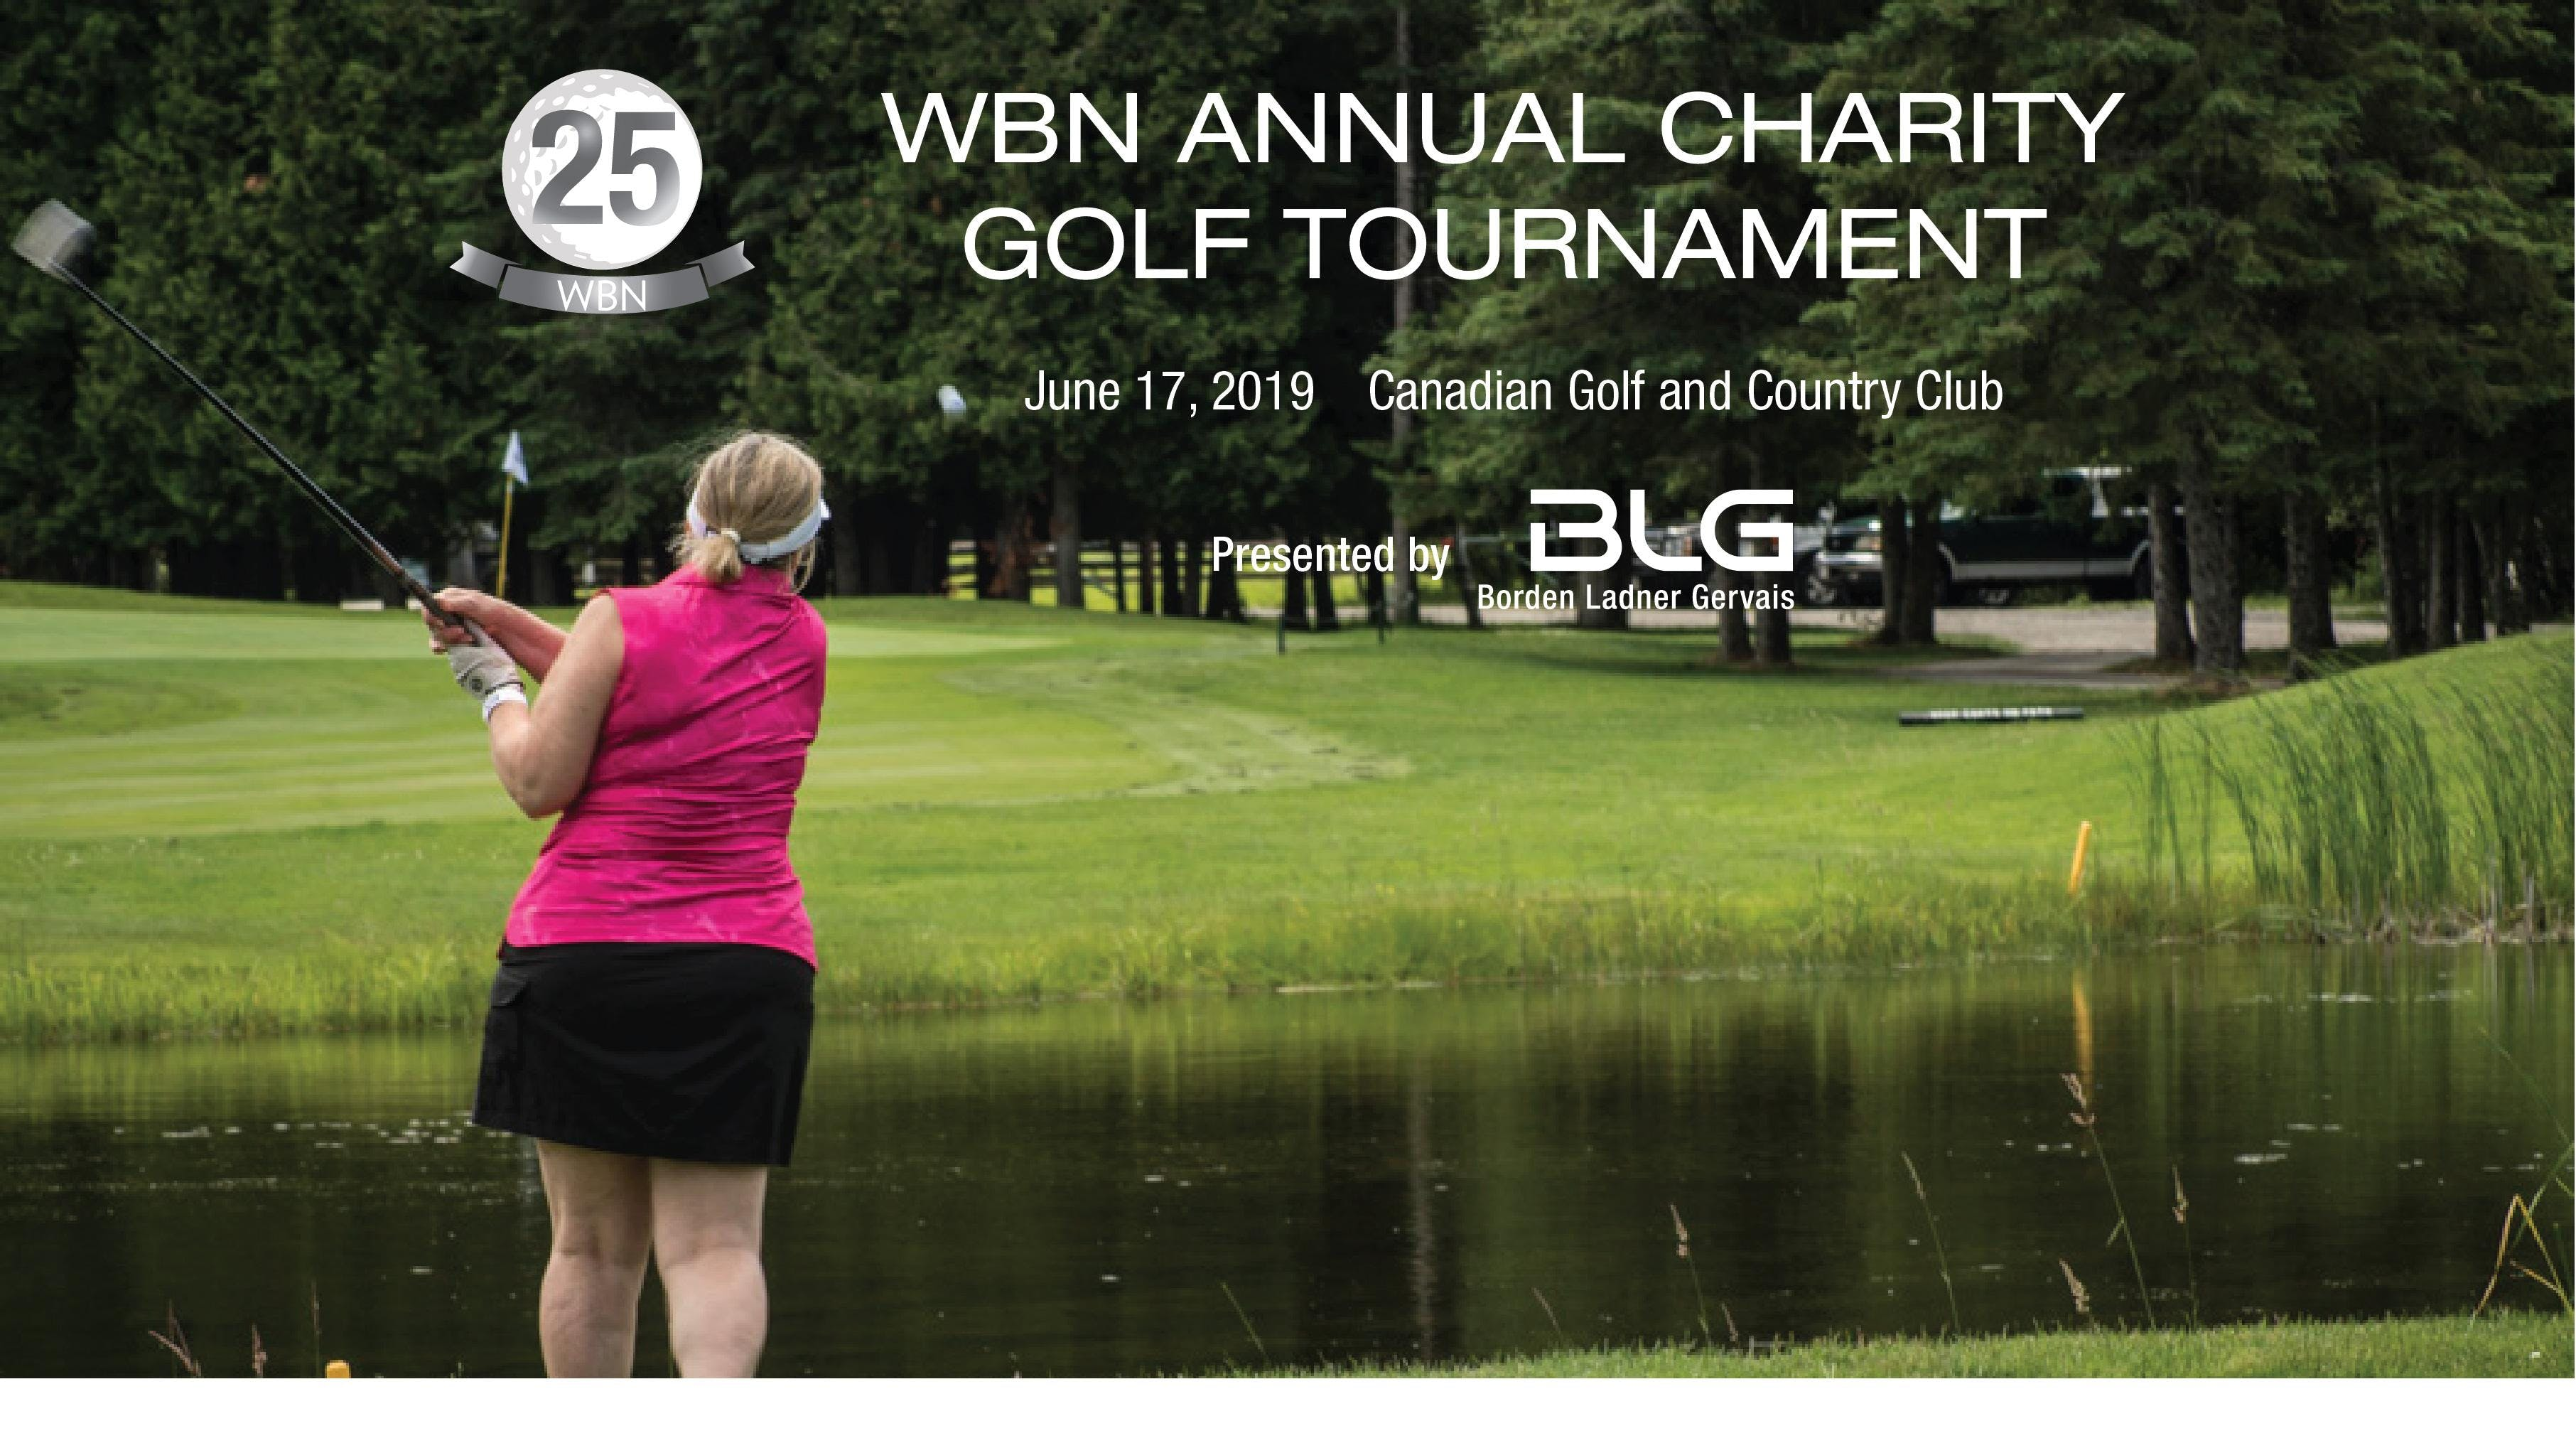 25th Annual WBN Charity Golf Tournament Presented by BLG